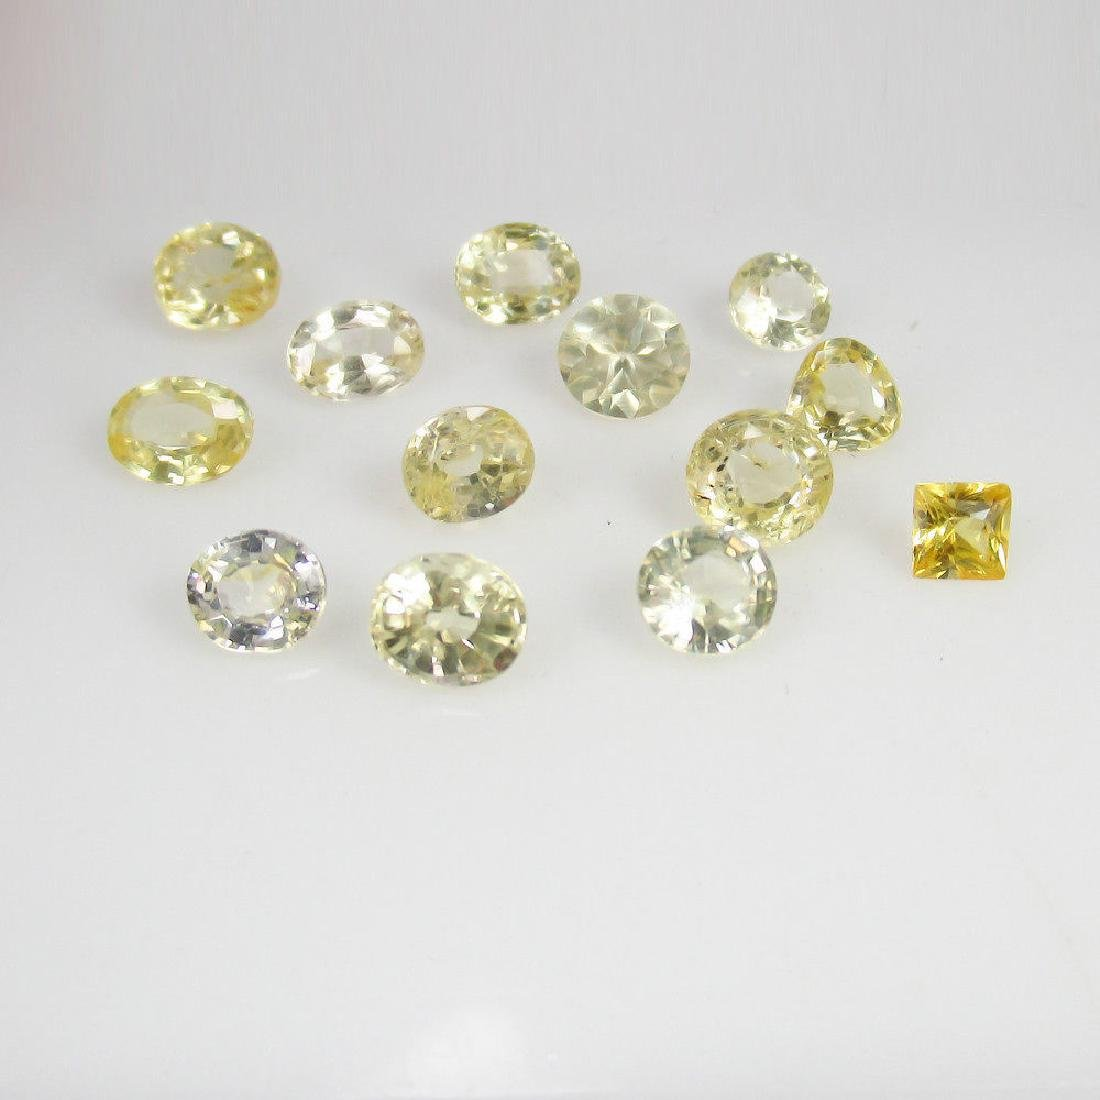 8.20 Ctw Natural Ceylon Yellow Sapphire Mixed Lot - 2